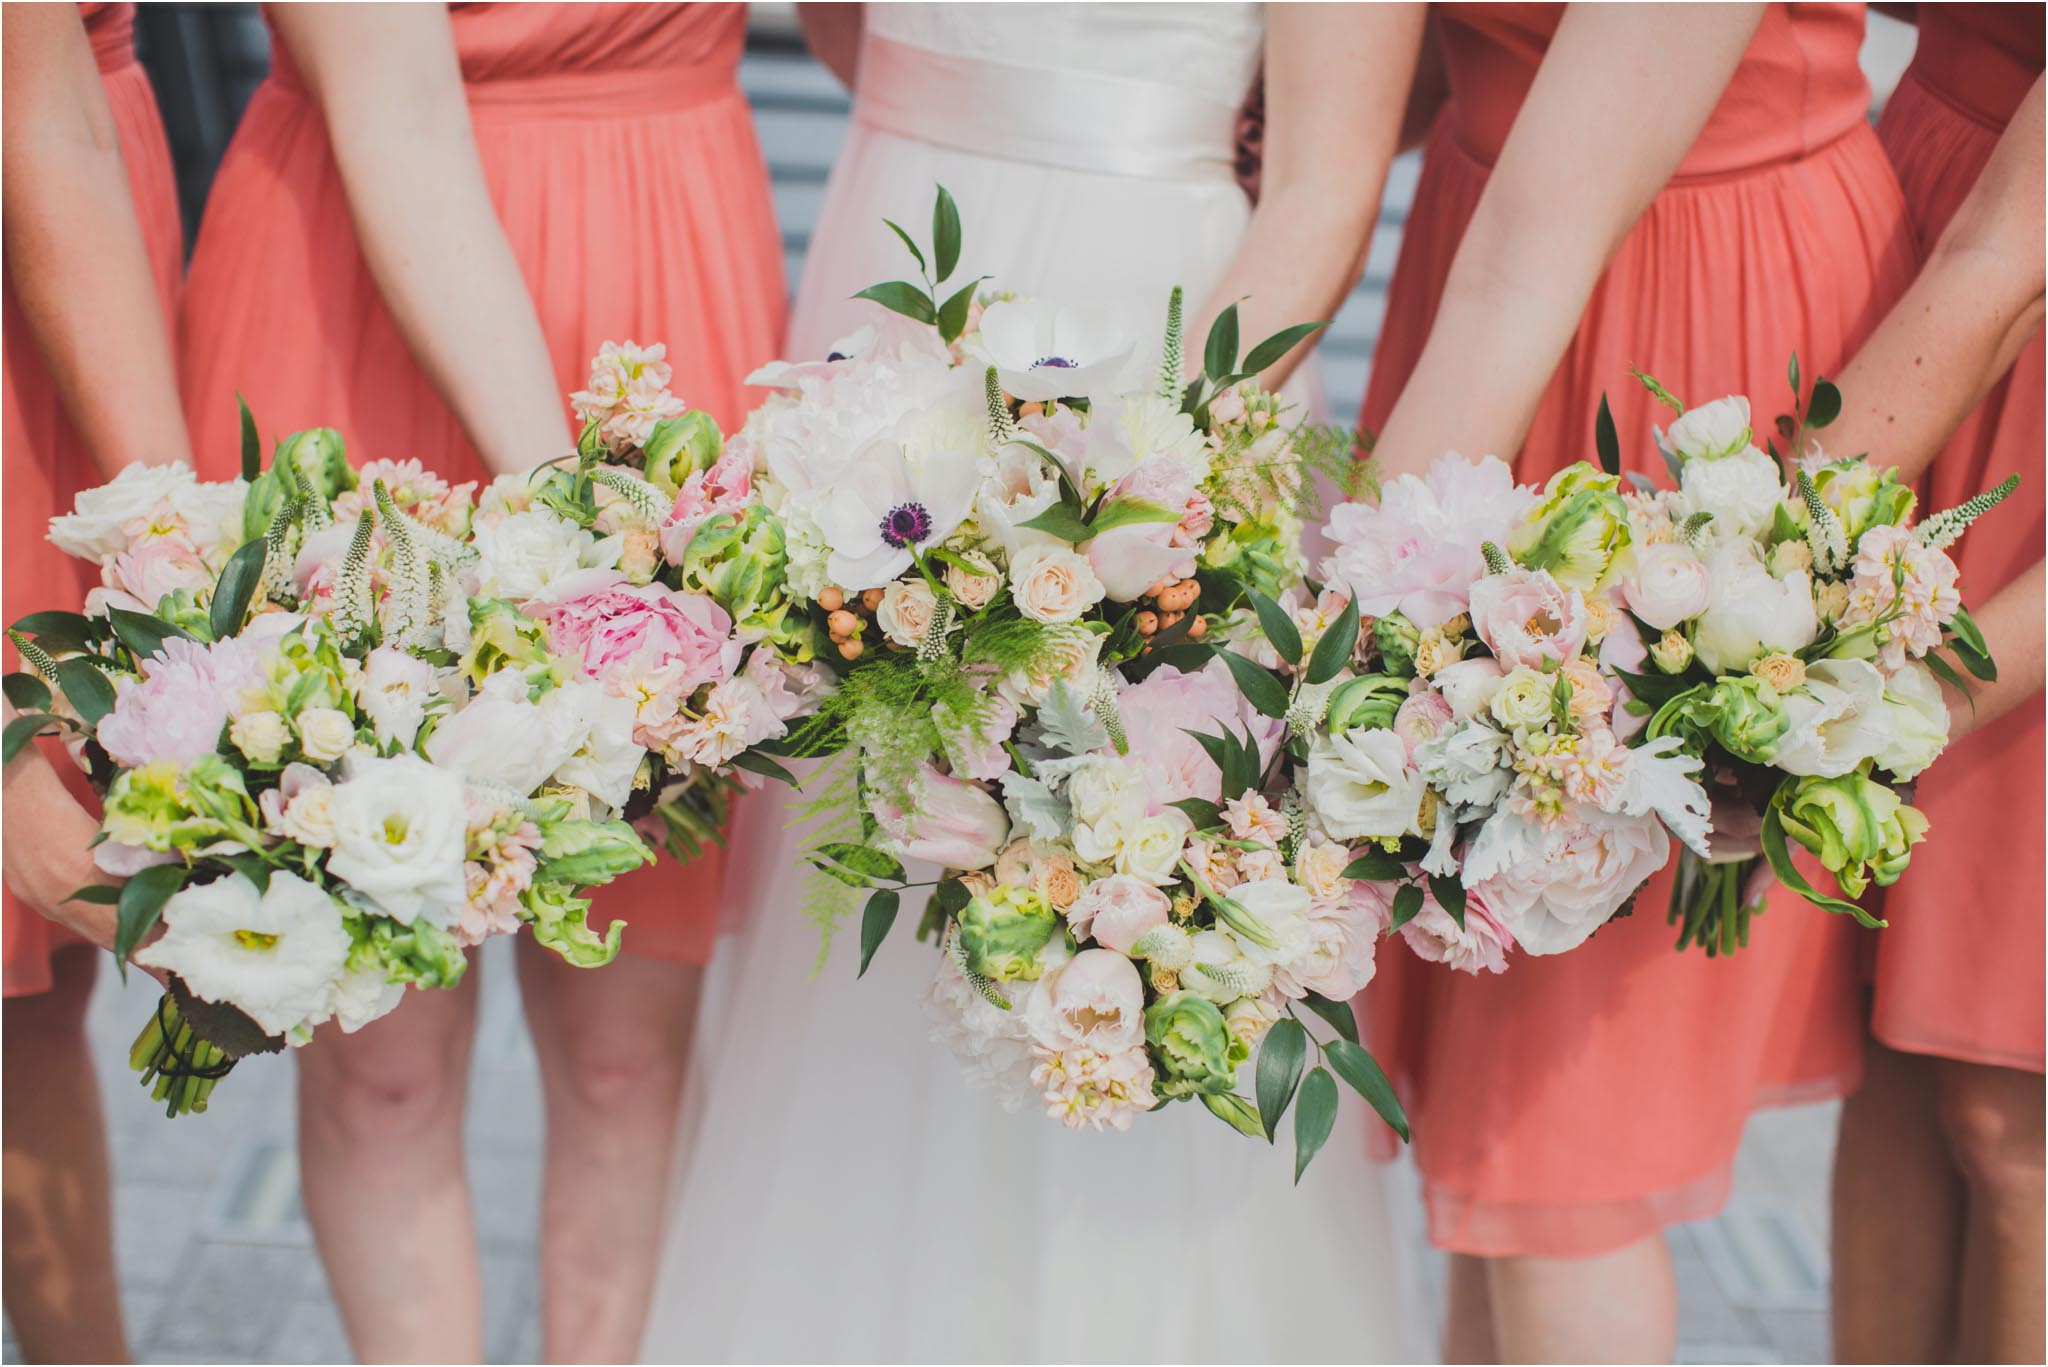 Falls Flowers, bridal party